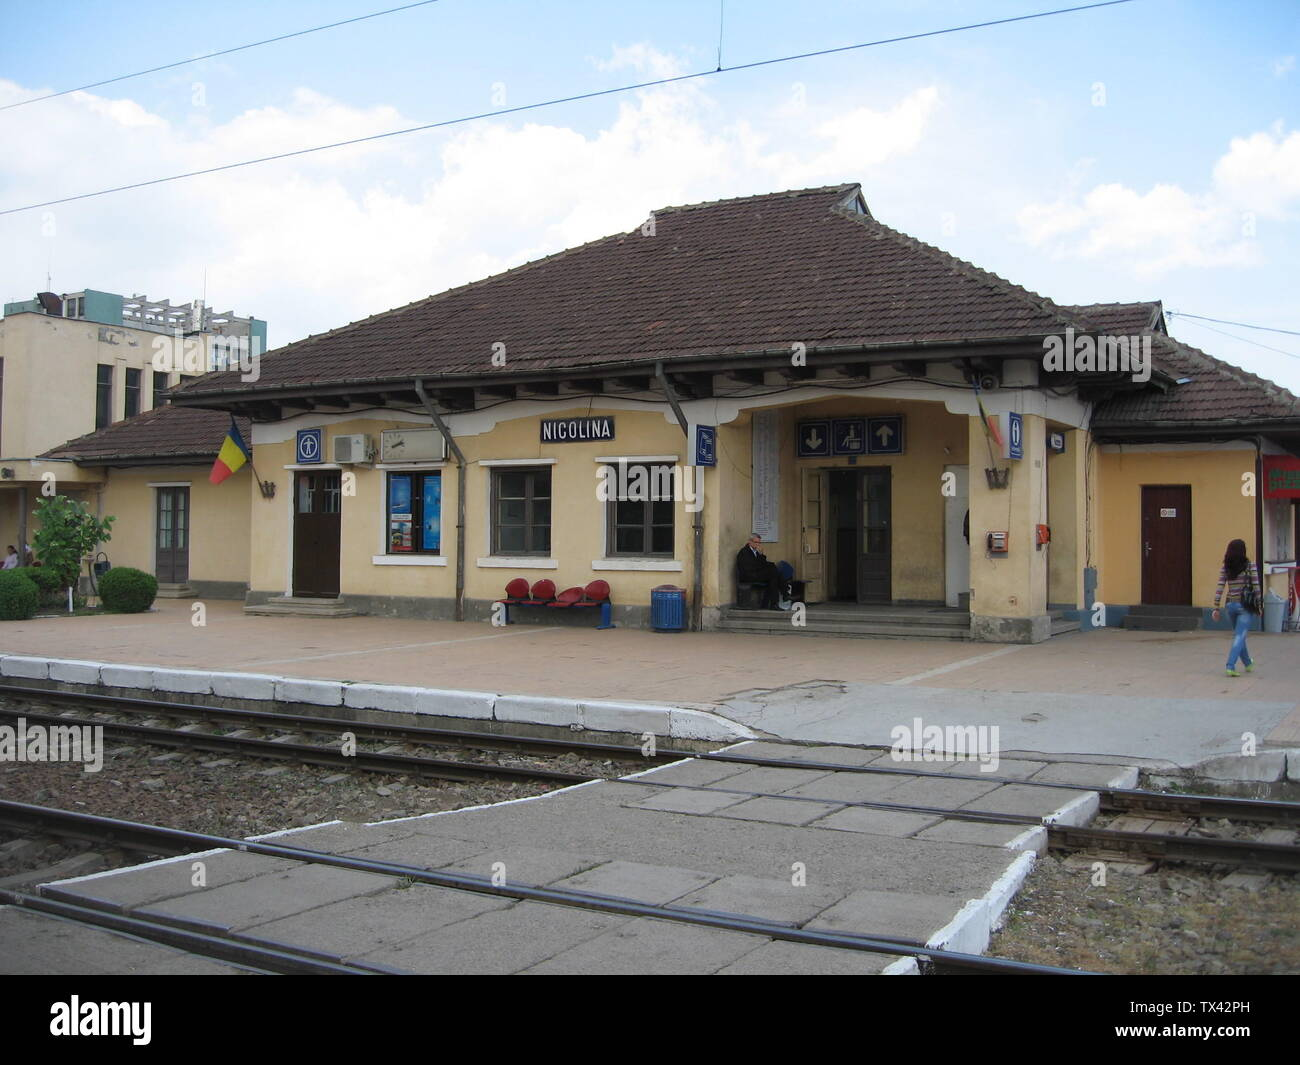 Iasi , Nicolina railway station , Iaşi , Romania Română: Iaşi , Gara Nicolina  , Iaşi , România; 6 May 2009 (original upload date); Transferred from ro.pedia; transferred to Commons by User:Argenna using CommonsHelper.; Cezar Suceveanu , original uploader was Cezarika1 at ro.pedia; Stock Photo